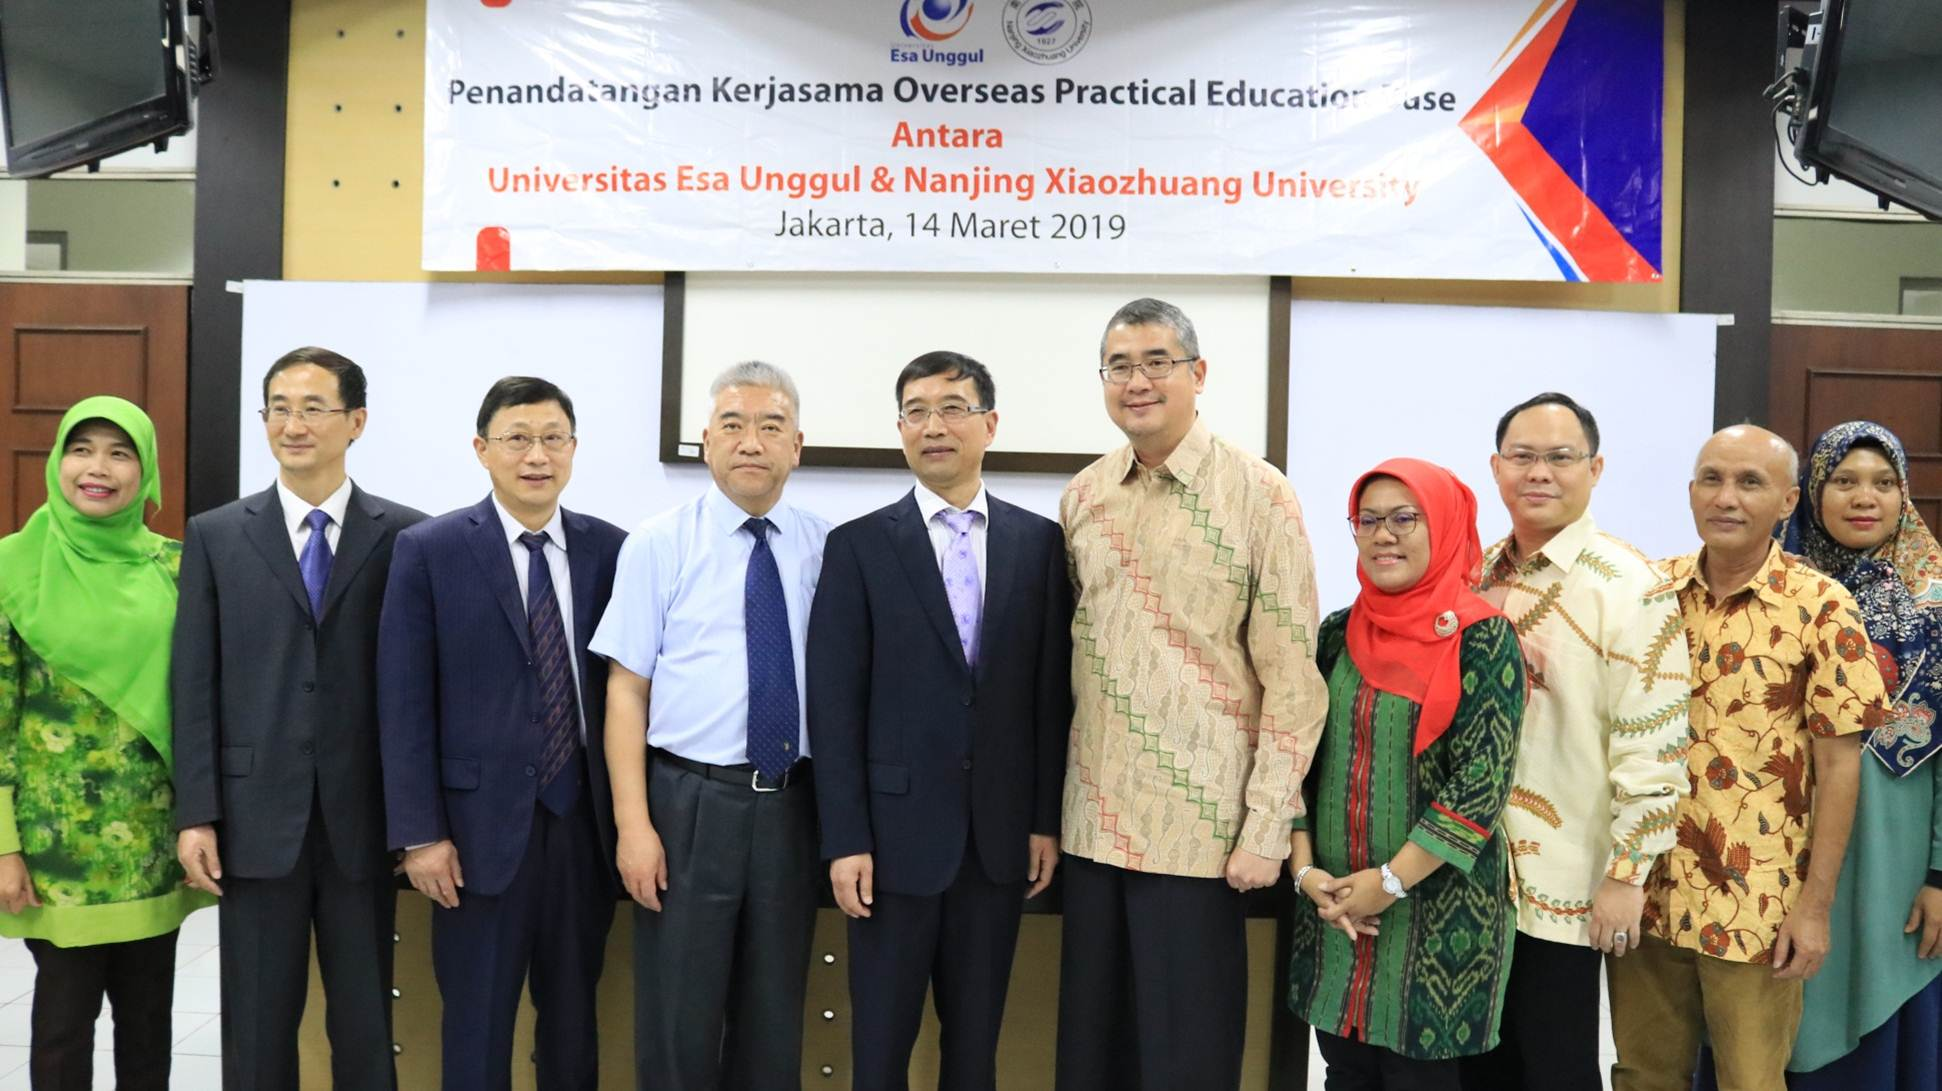 To Prepare Globally Competitive Human Resources, Esa Unggul Signs Memorandum of Understanding (MoU) with Nanjing XiaoZhuang University